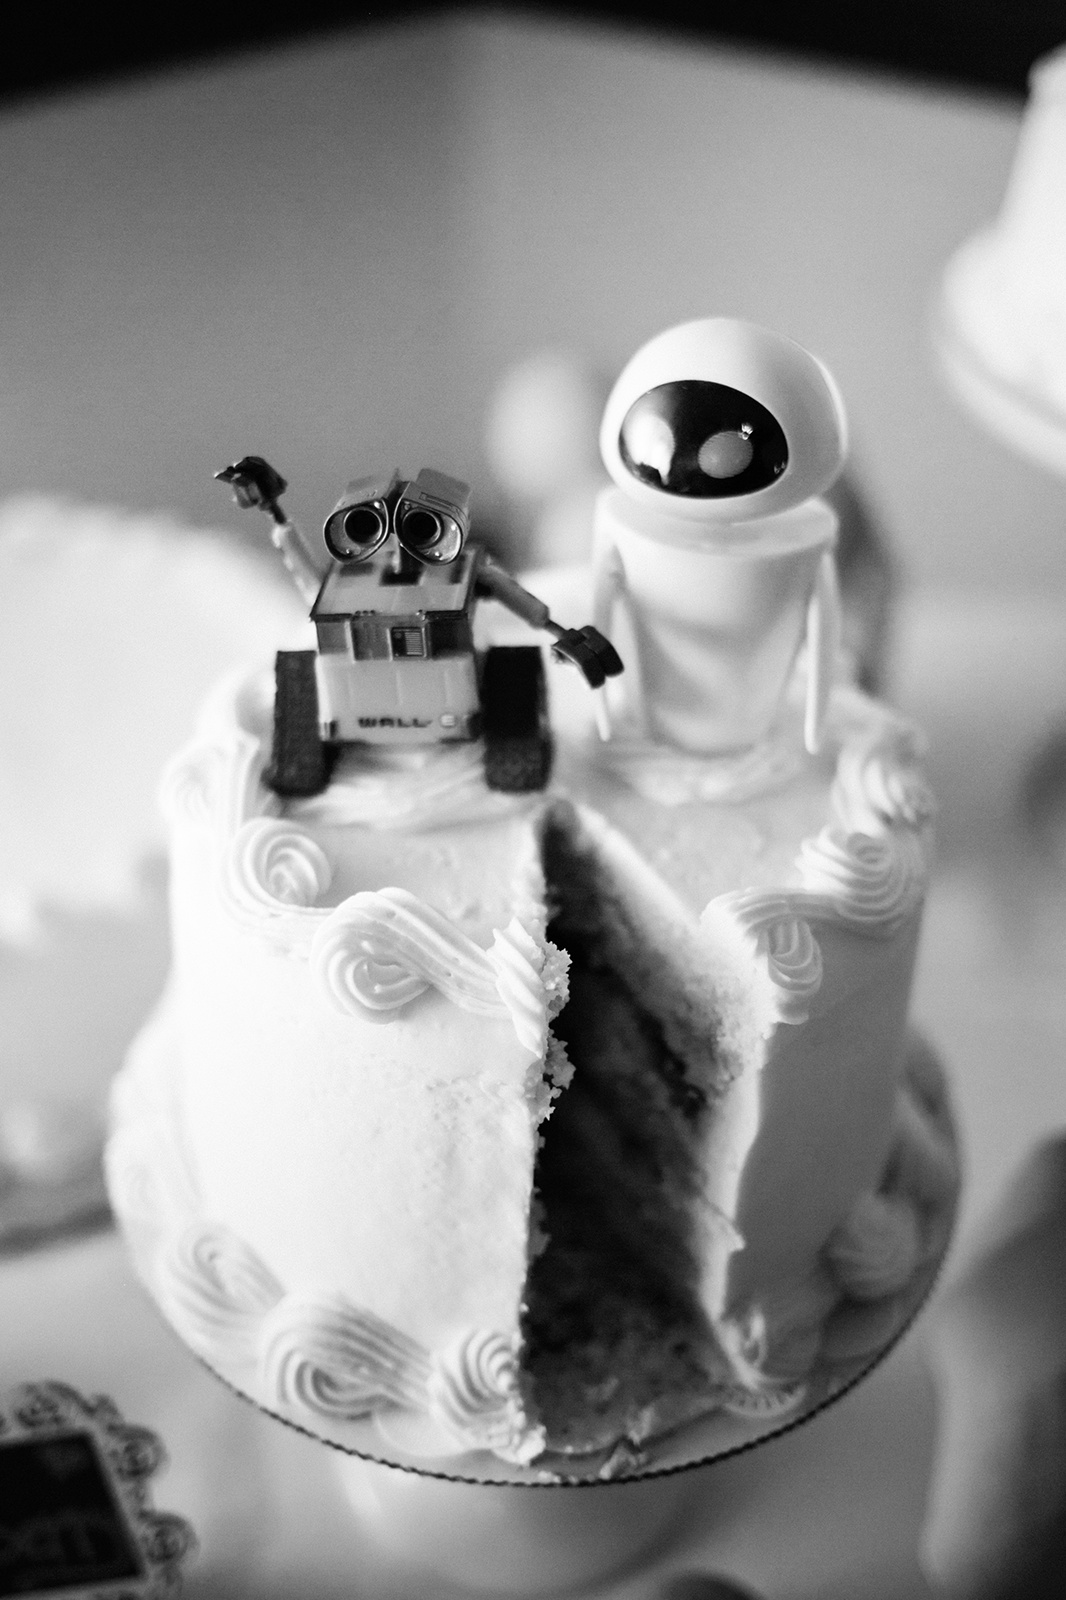 Wedding cake with a piece missing, I bet Wall-e ate it!